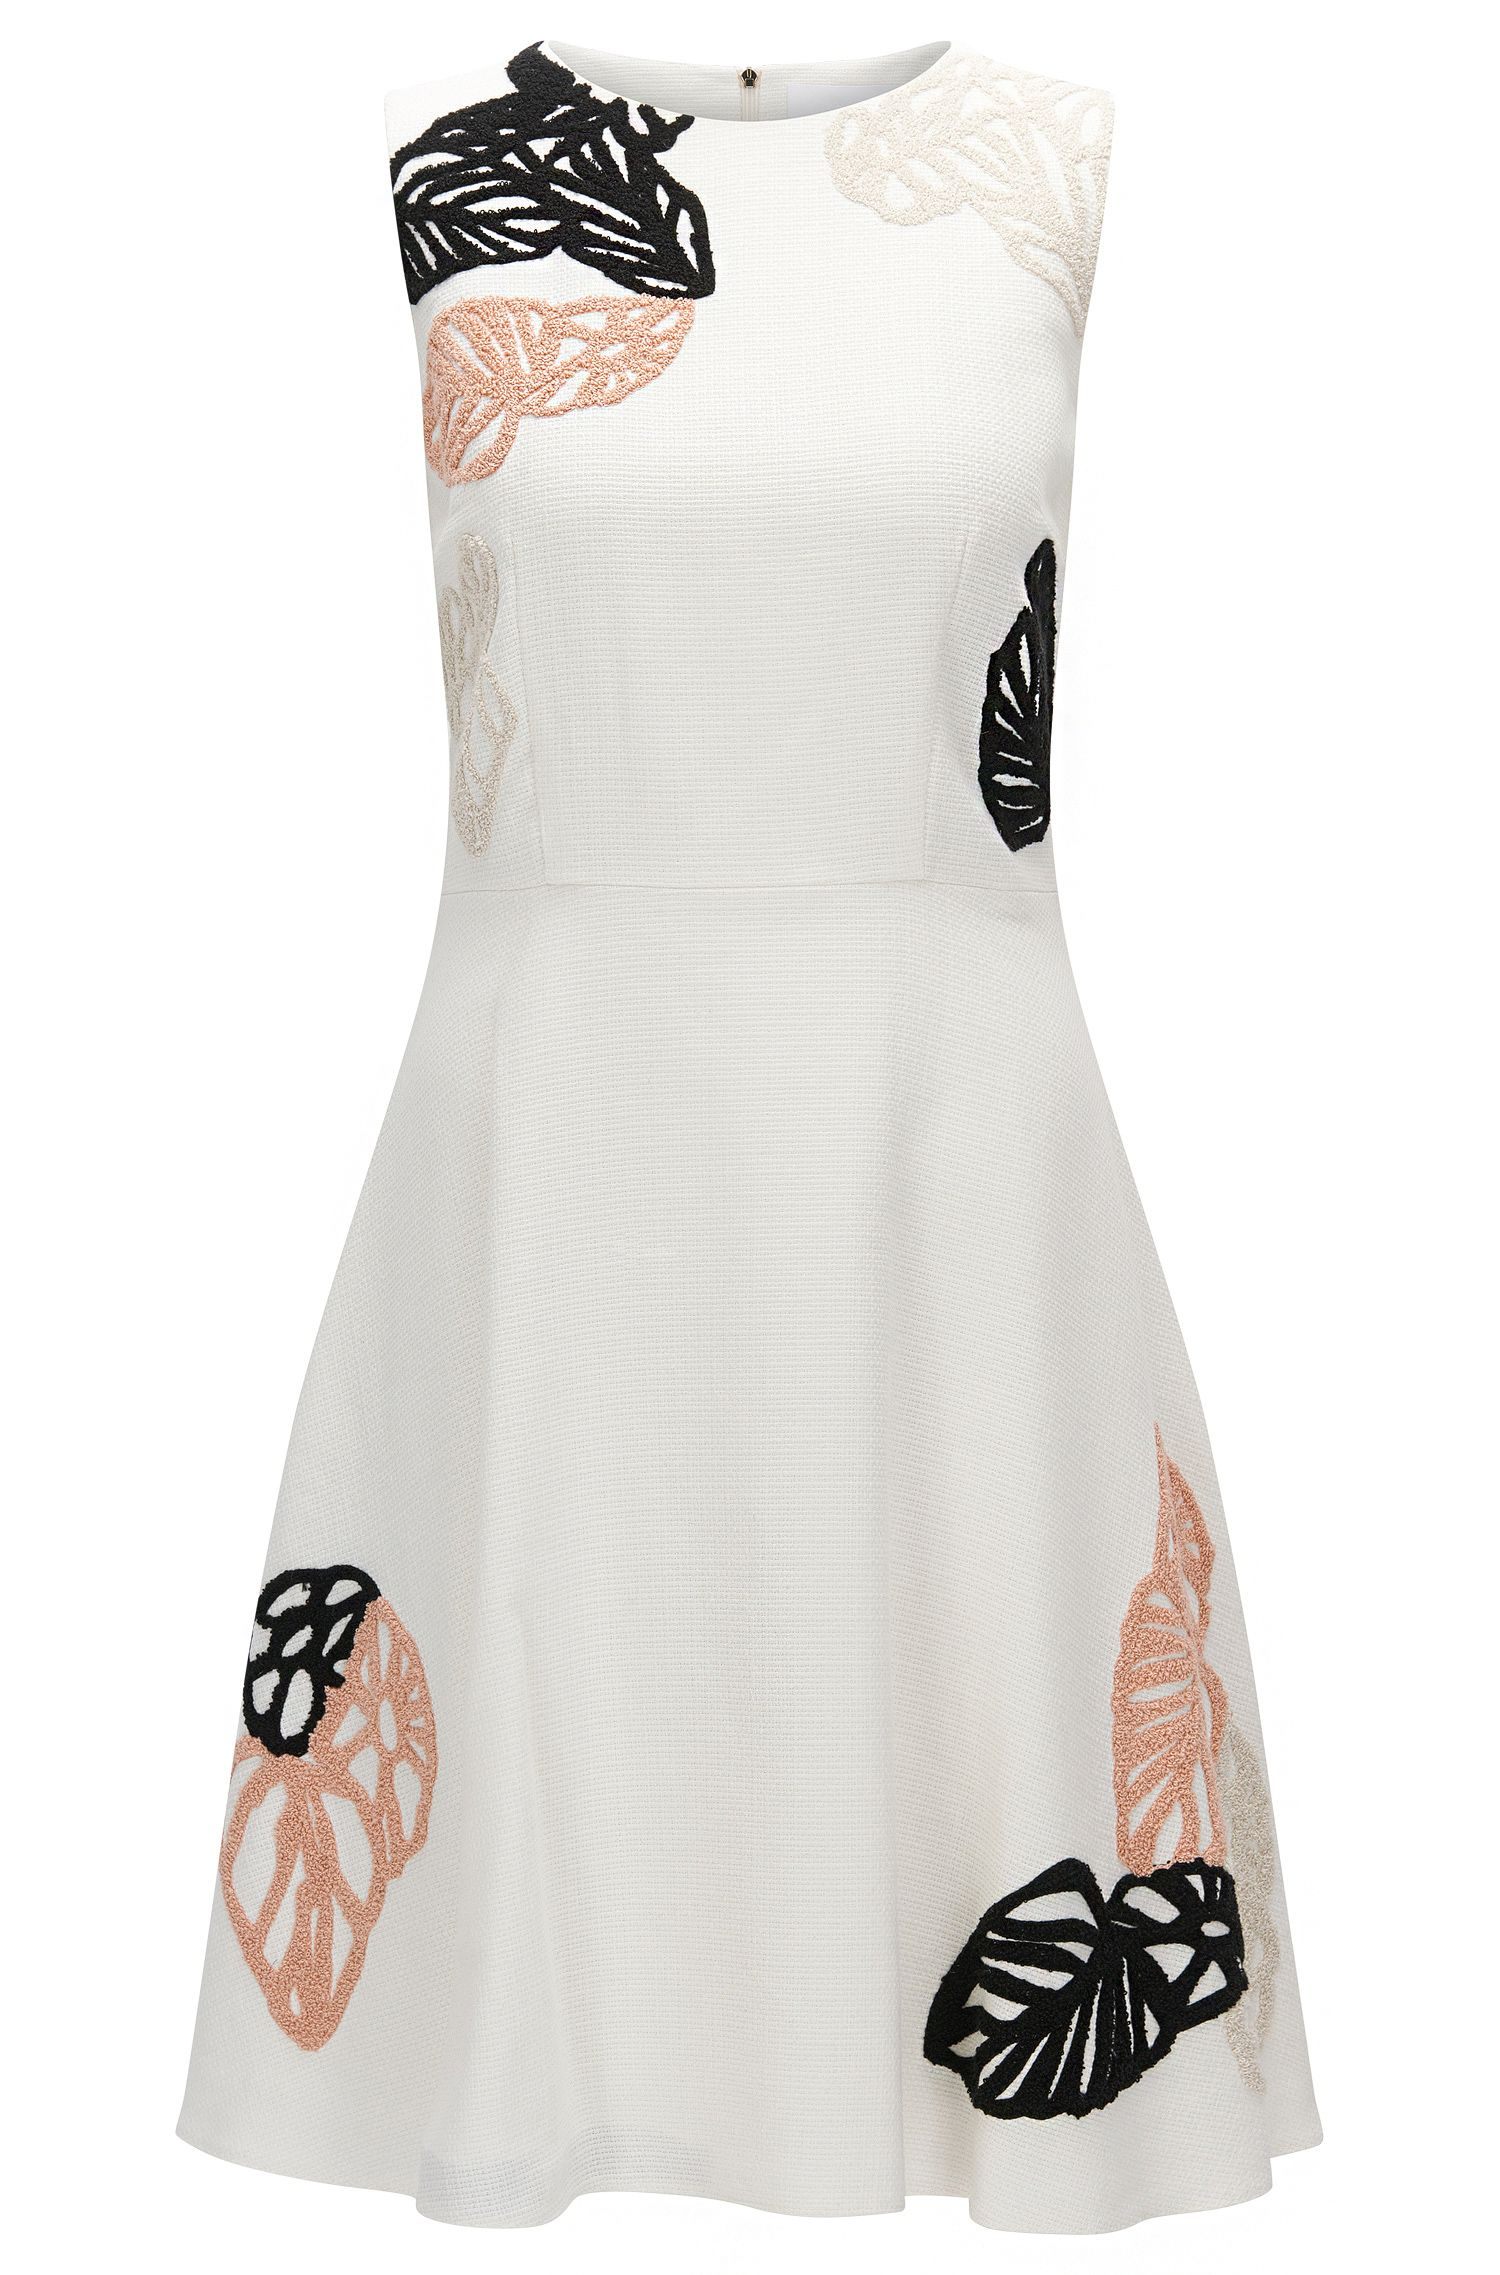 'Dyfera' | Cotton Blend Embroidered Dress